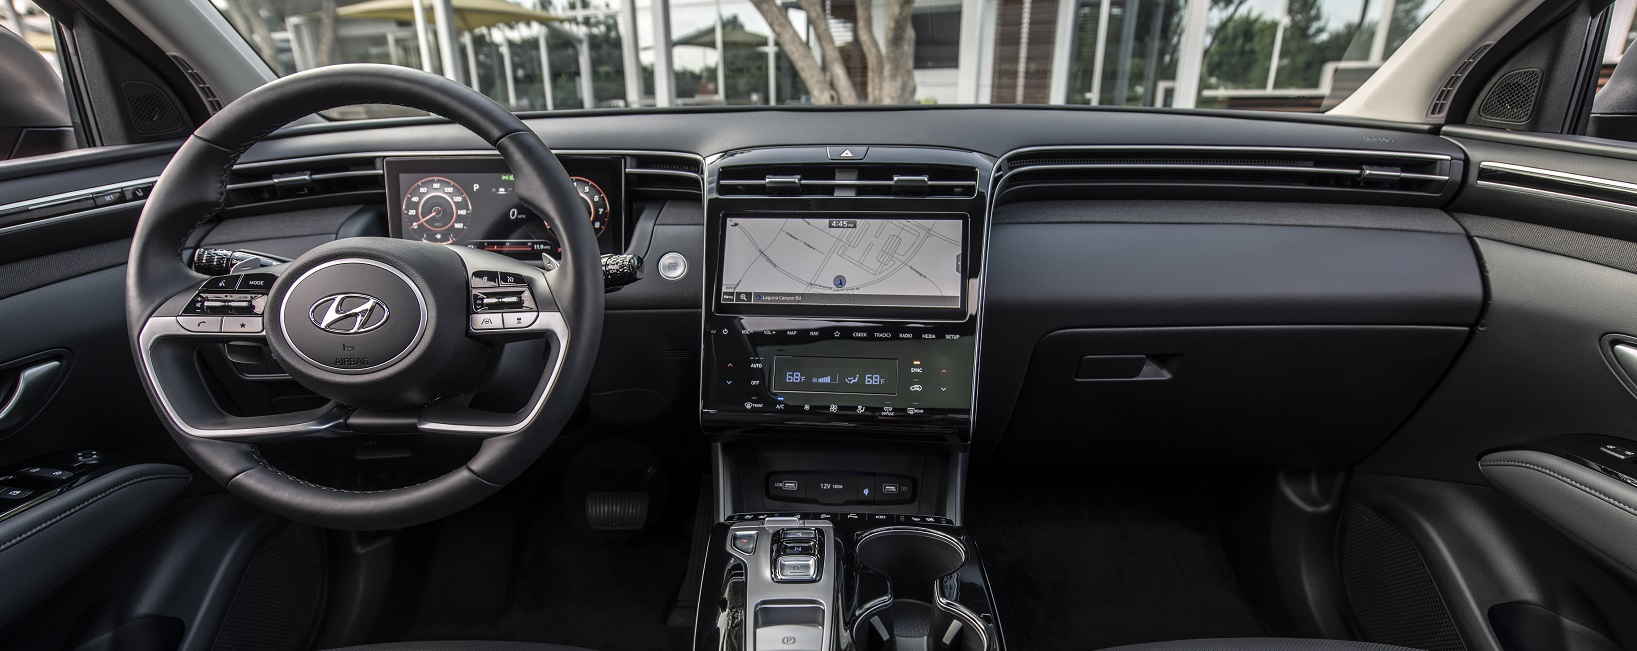 The Tucson's interior design is uncluttered and ergonomically arranged